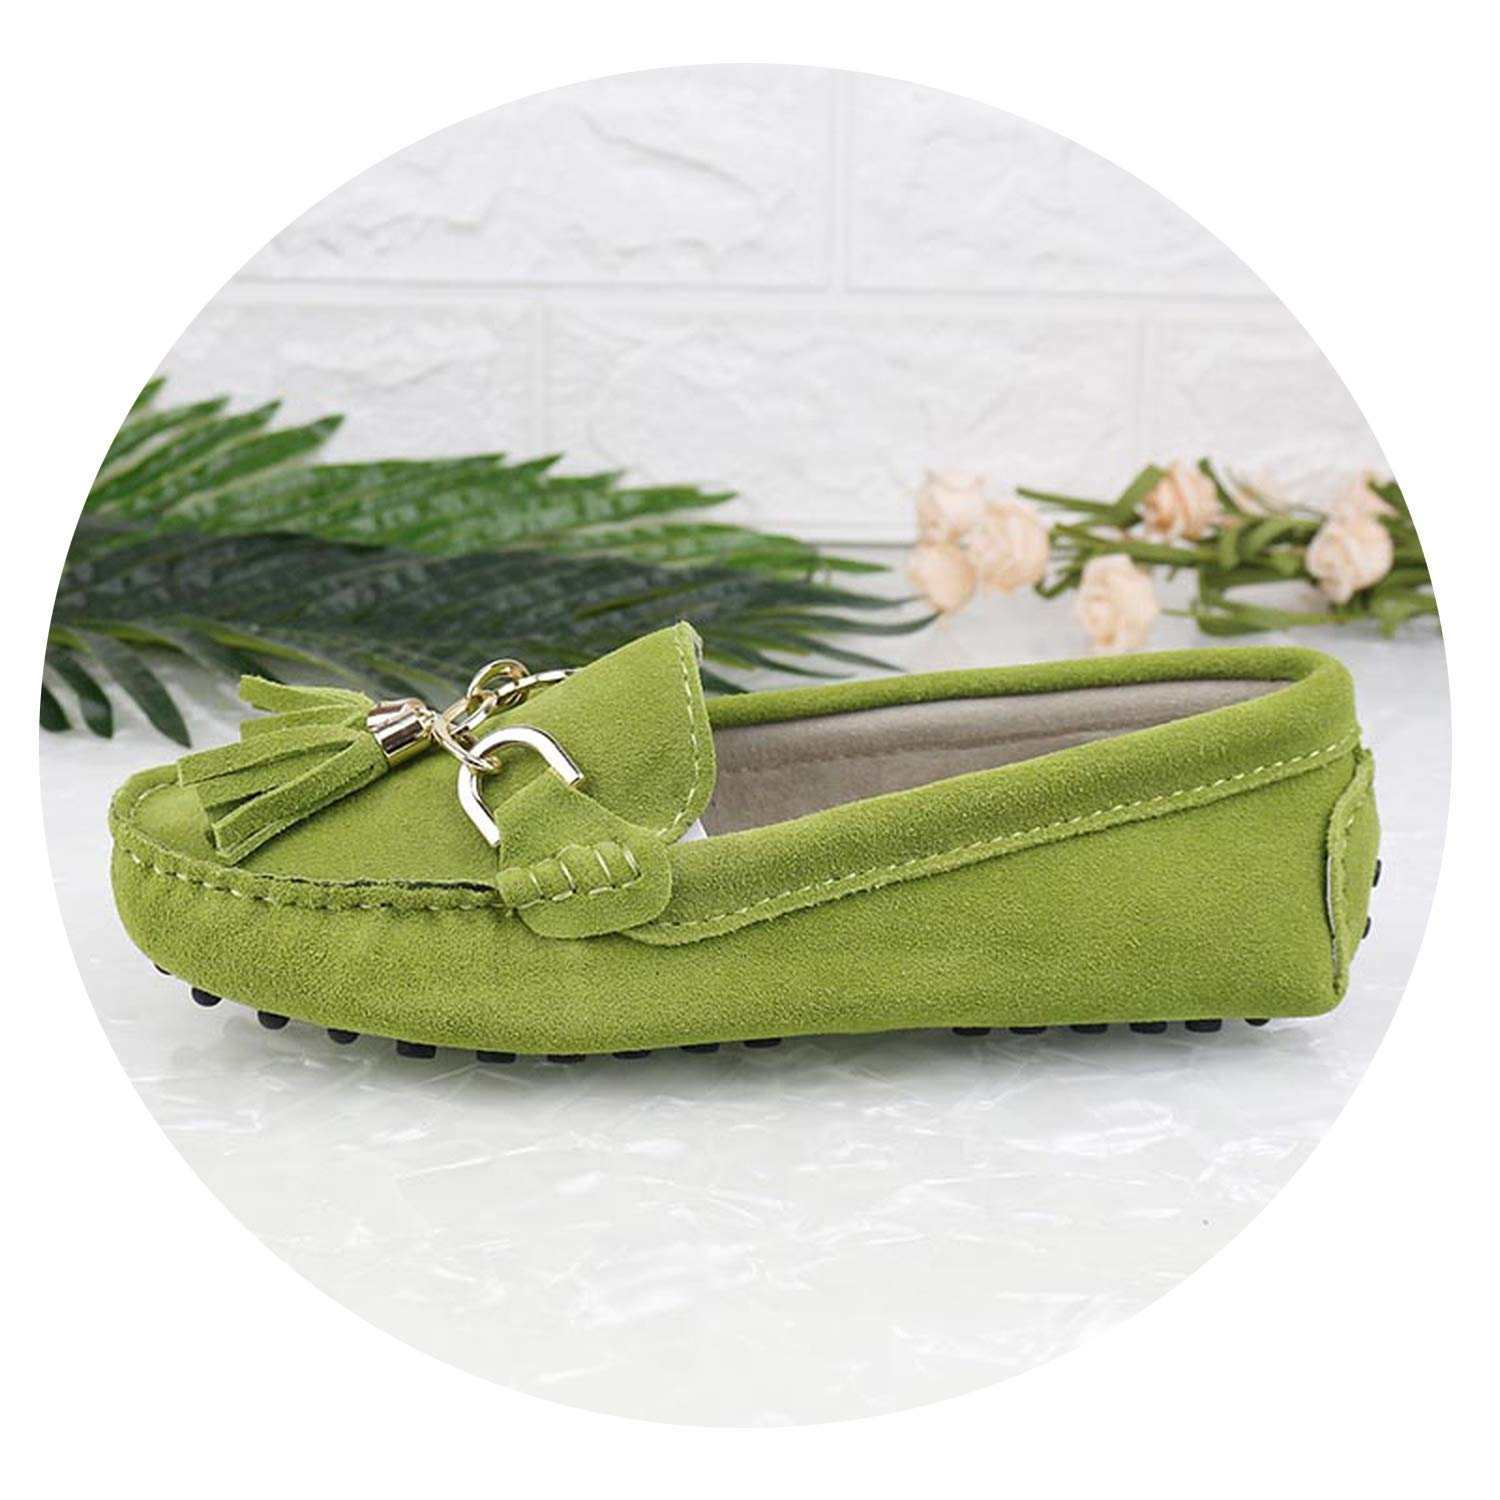 Apple Green Fashion Women Lady Leather Loafers Casual Driving shoes Women Flats shoes